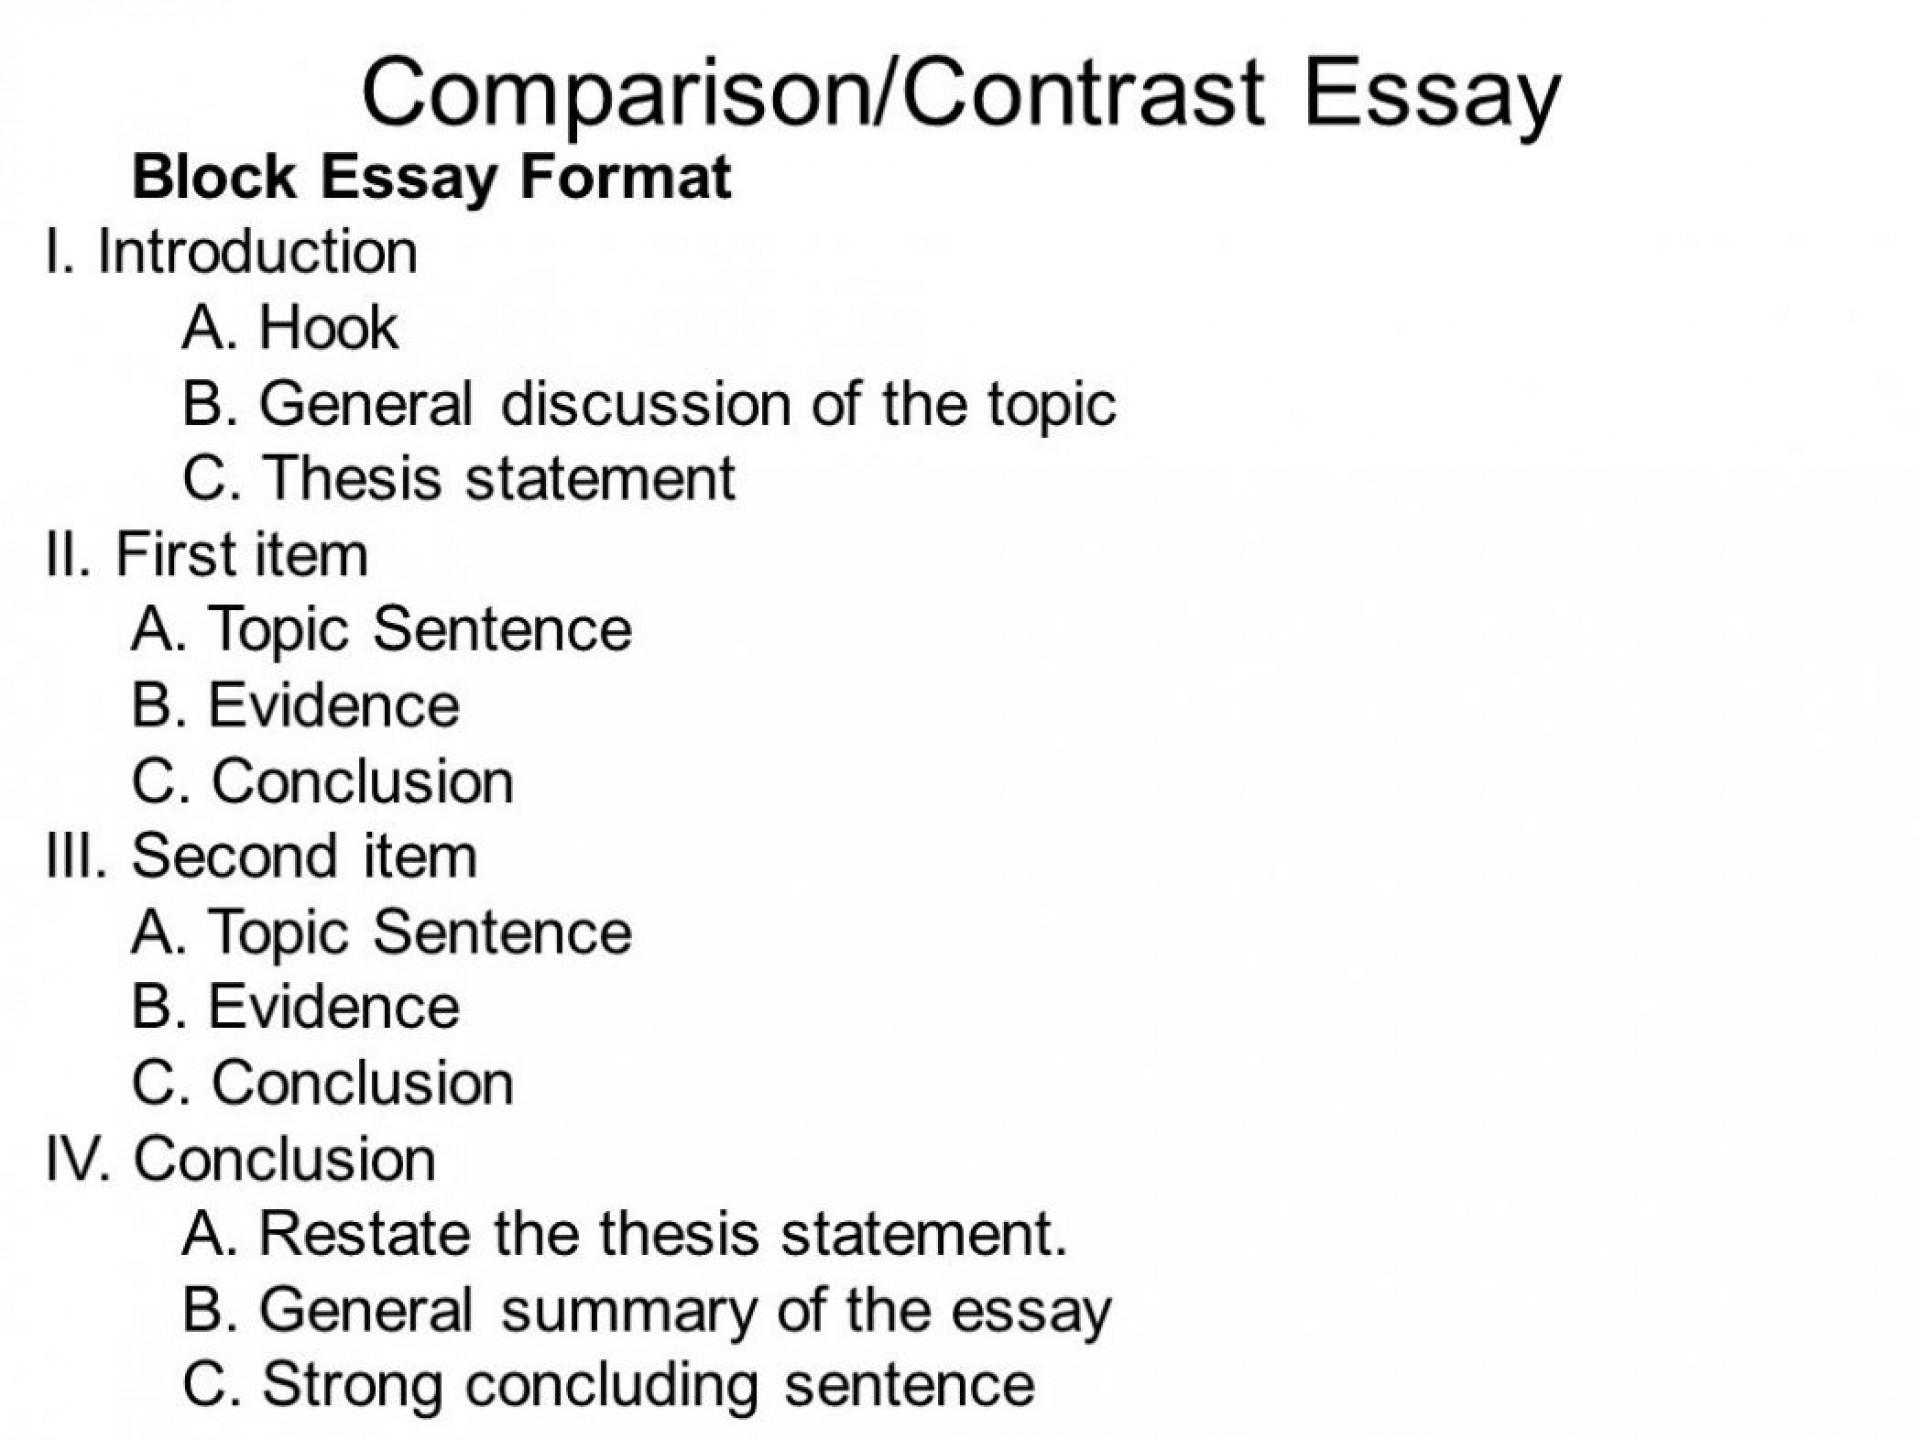 005 Essay Example Compare And Contrast Outline Format Argumentative Sli Mla Structure Breathtaking Comparison Sample Point By For Middle School 1920